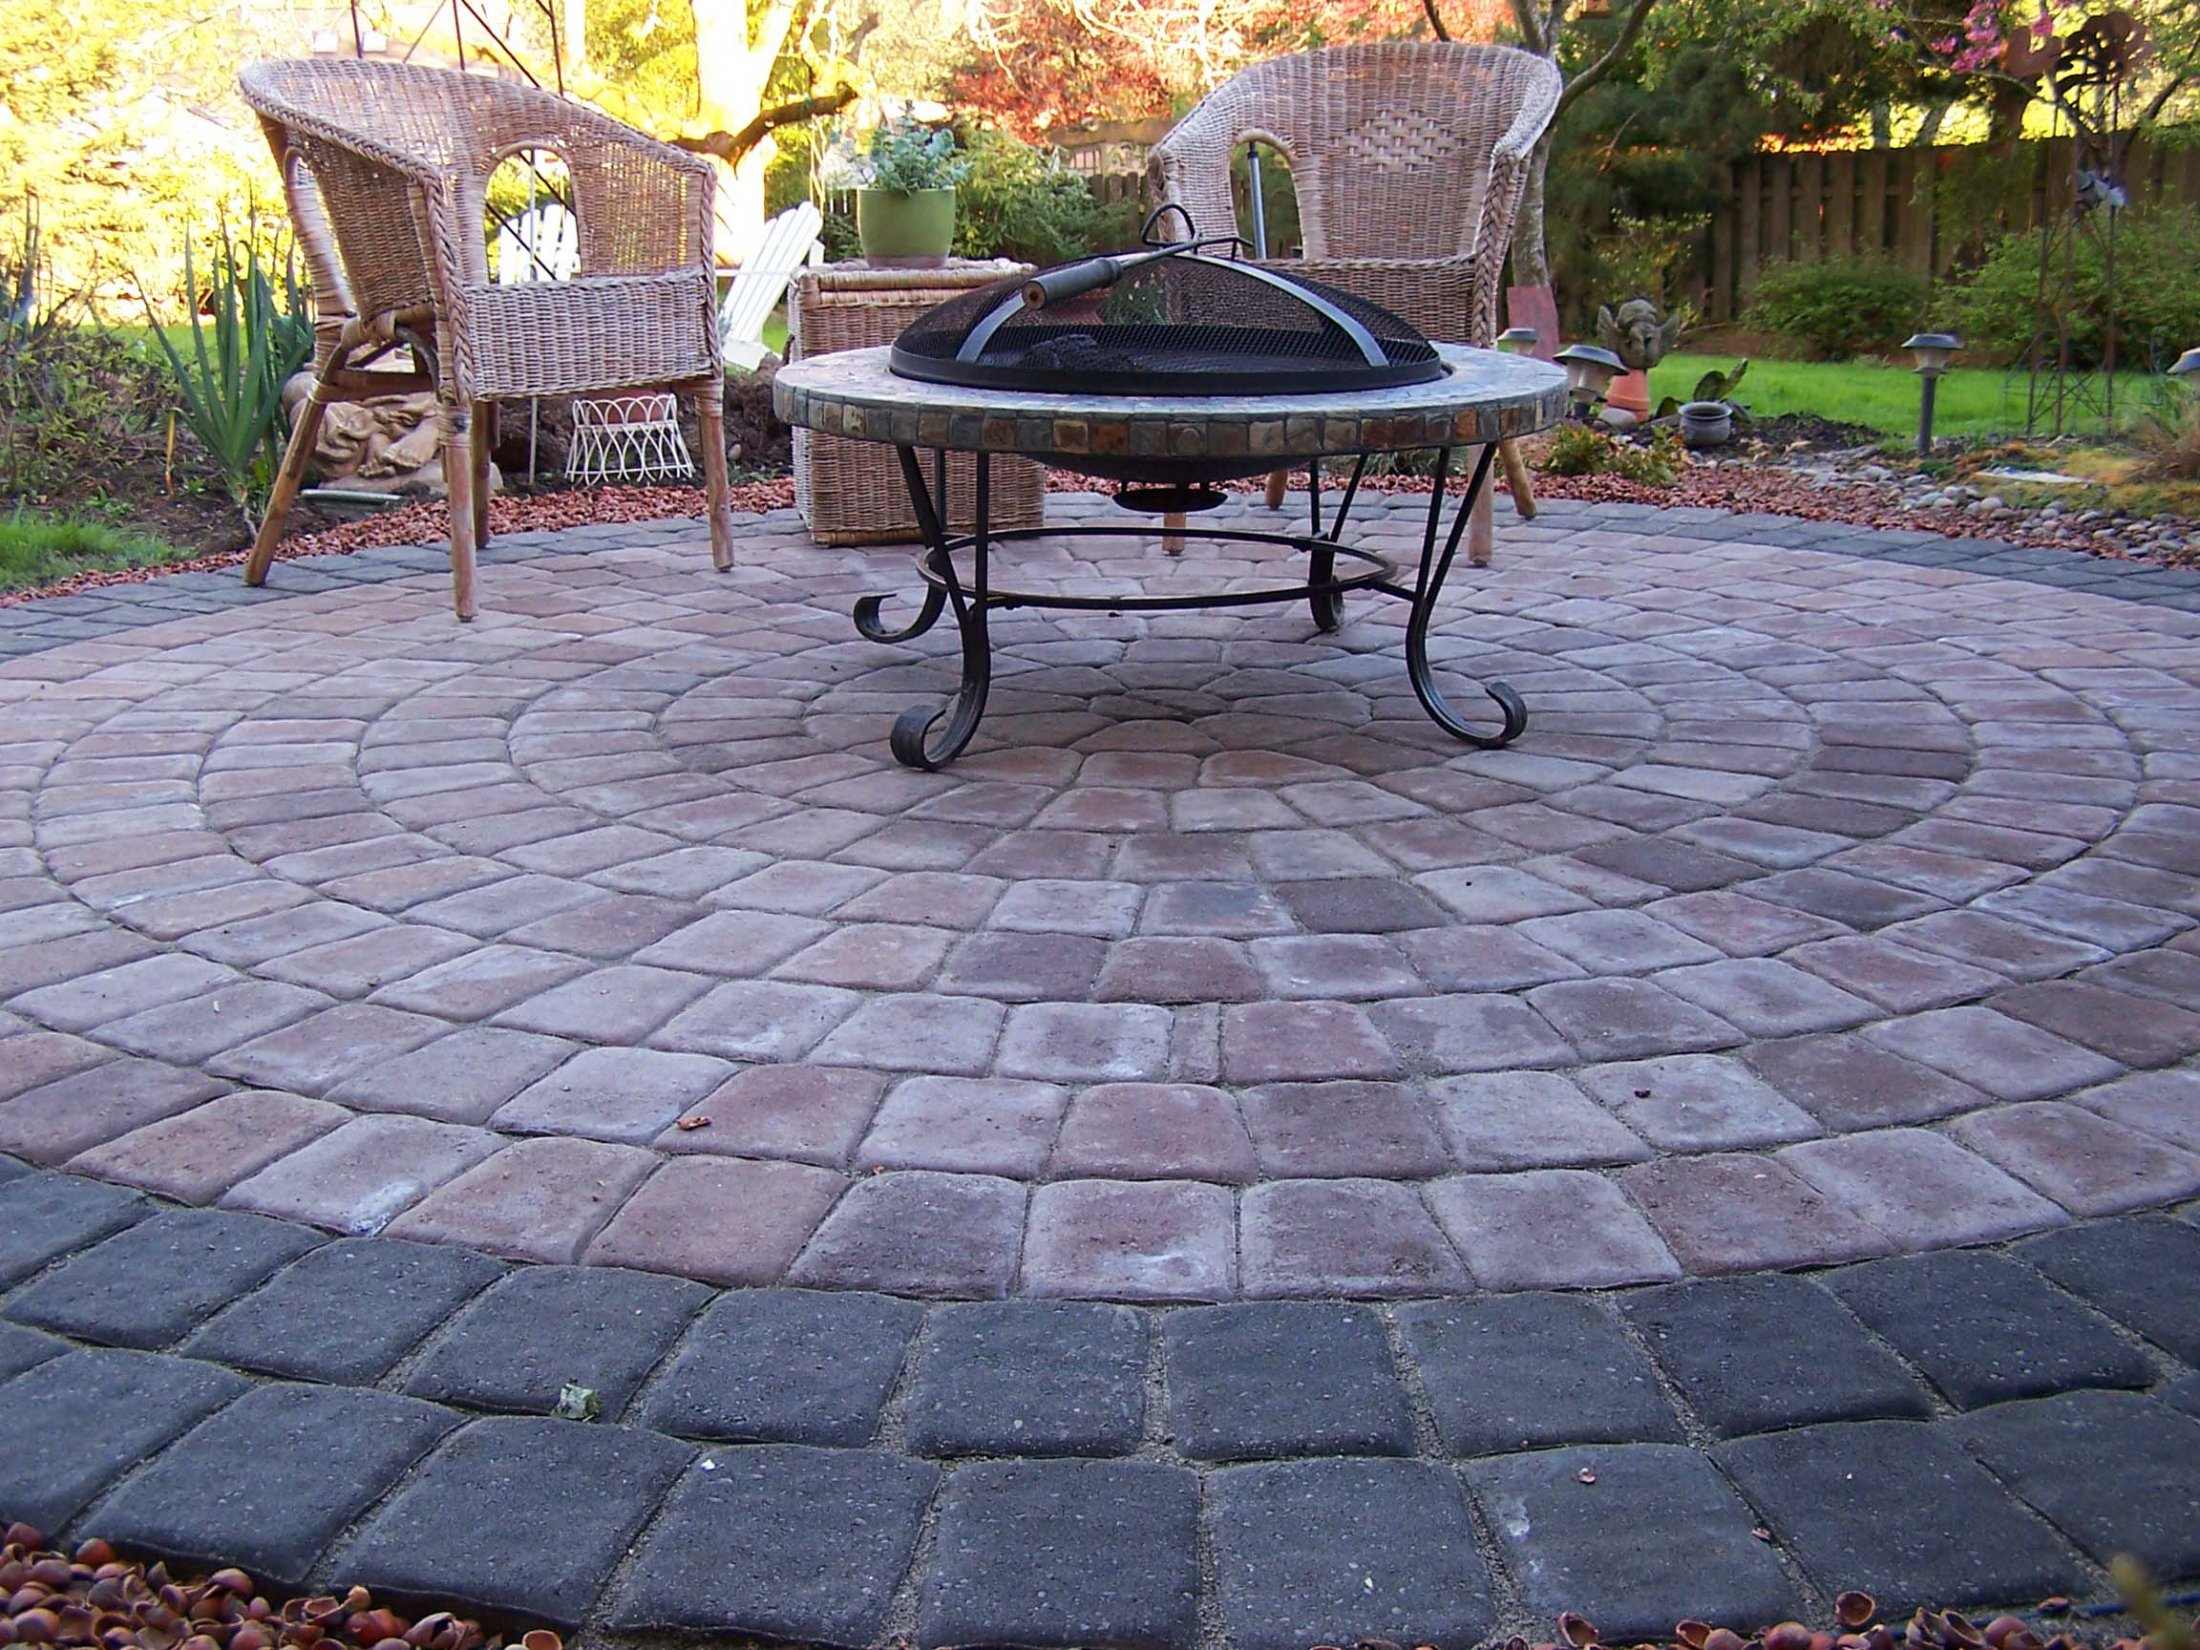 Outdoor-living-spaces-paver-patios-driveways-pathways-outdoor-living-spaces-paver-patios-driveways-pathways 001